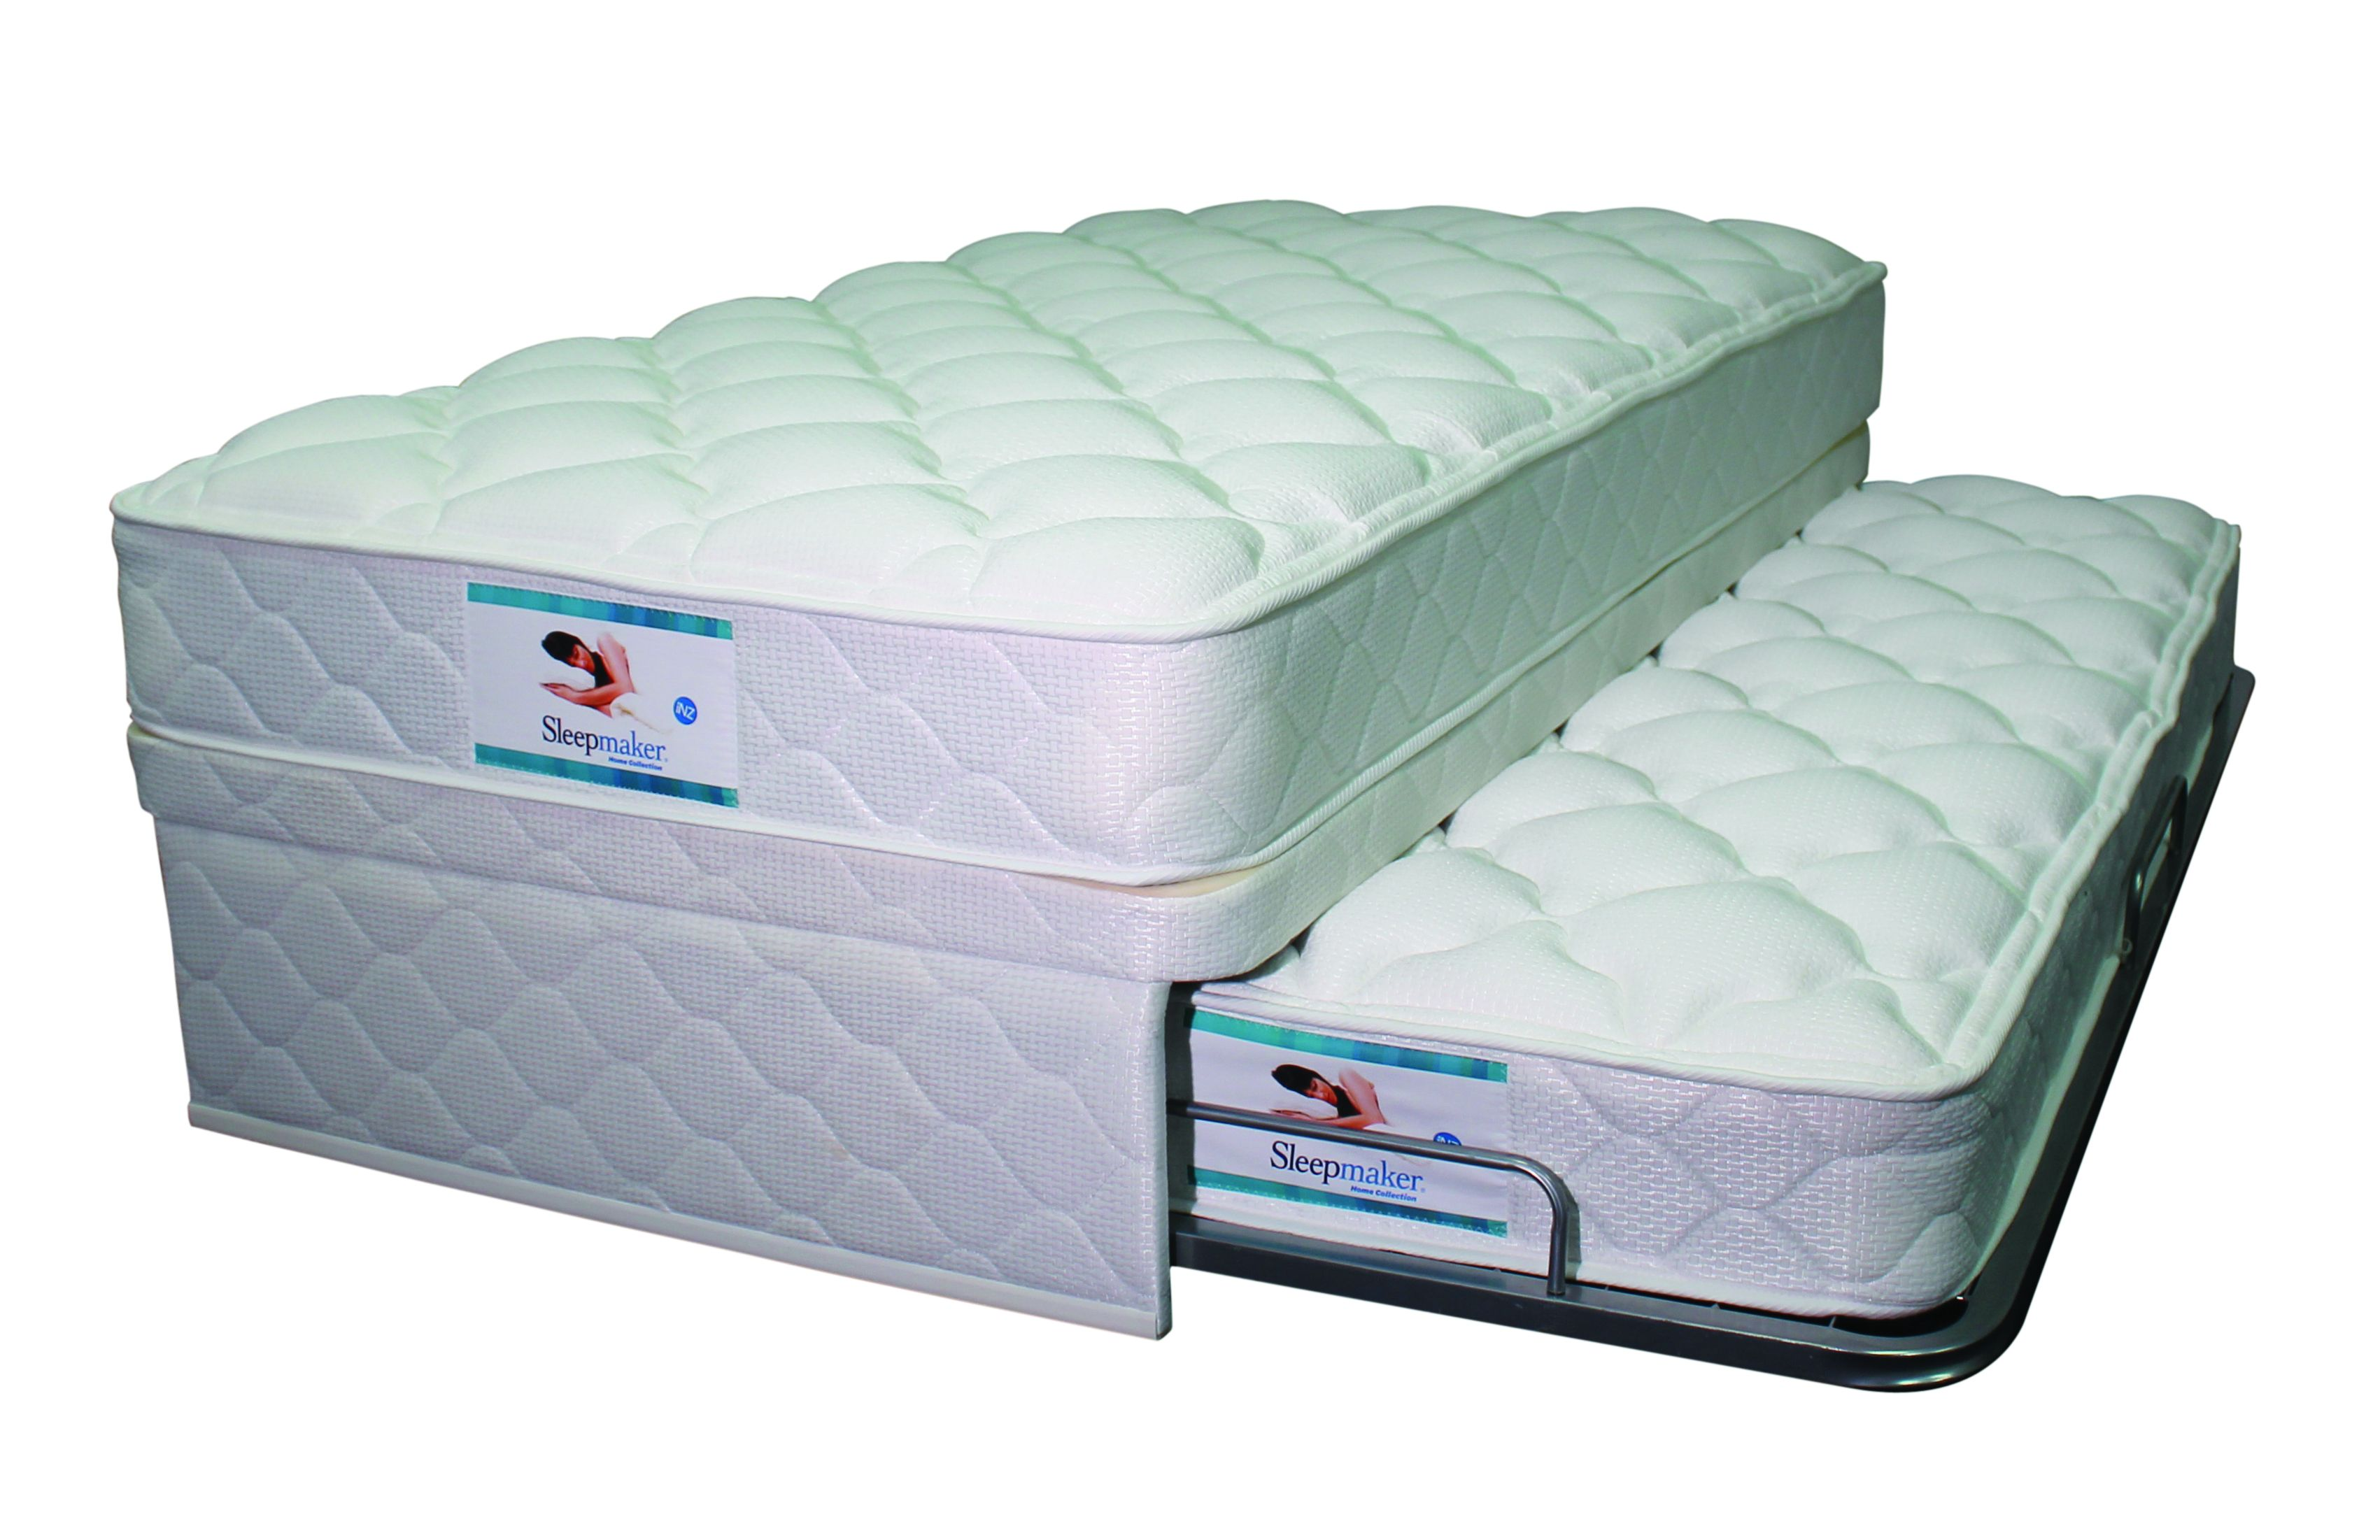 on base online buy beds category plush sleep aurora product mattress sale set